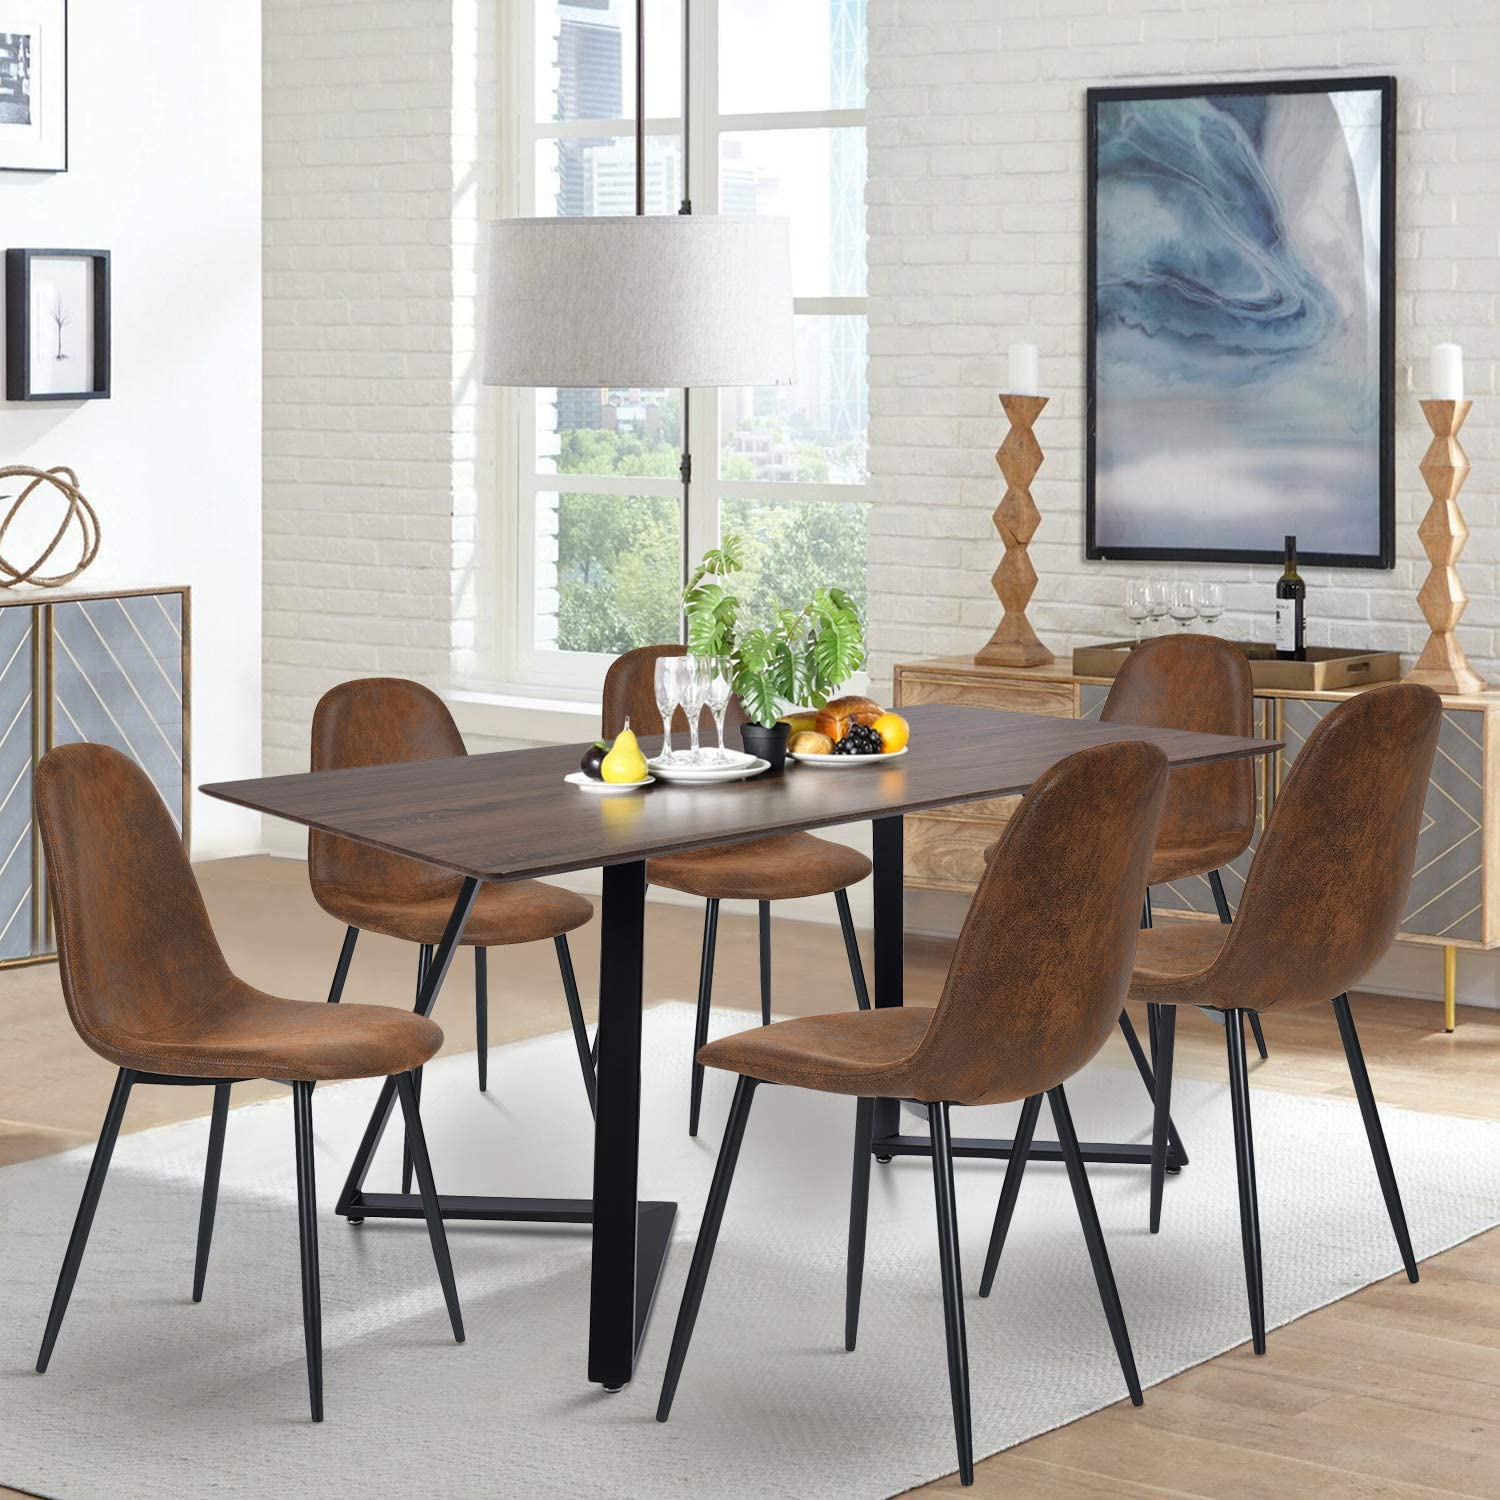 Navy Blue 4 6 People Use 75cm Rectangular Dining Room Table 85 Walnut Brown Color Wooden Top With Black Metal Frame Kitchen Table Size 158 Home Kitchen Furniture